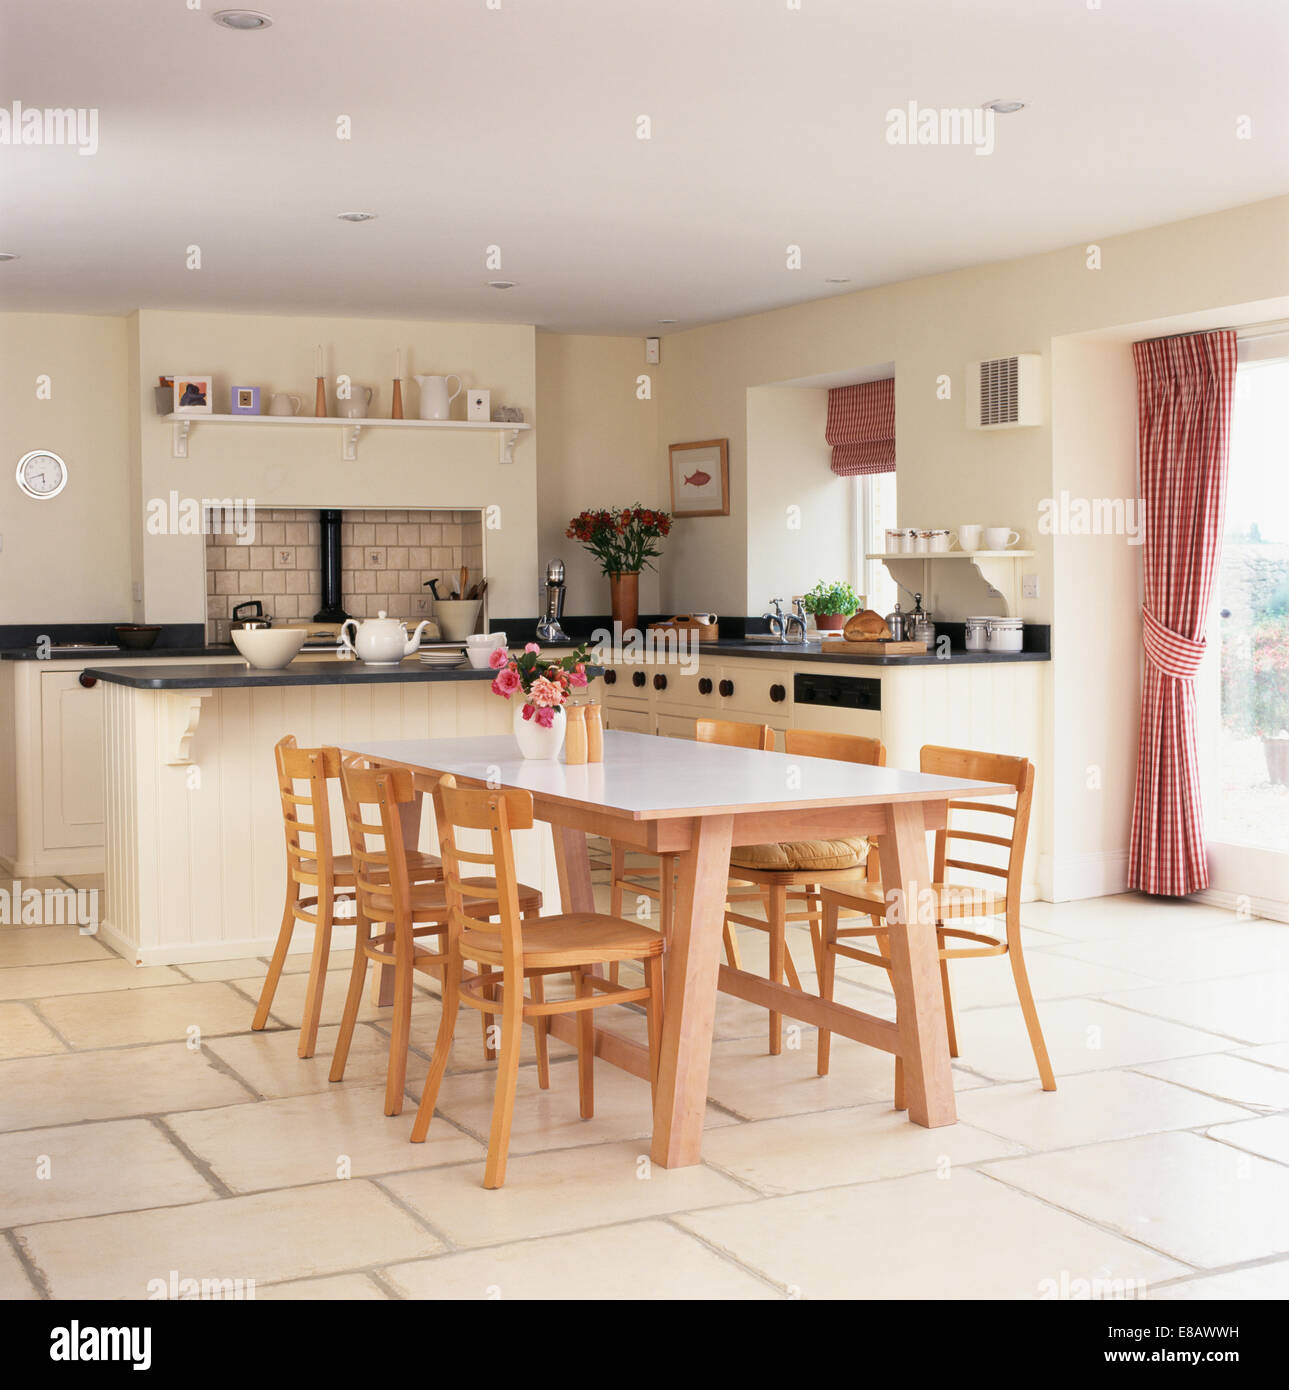 Pale Wood Chairs And Table In Modern Kitchen Dining Room With Limestone  Tiled Floor